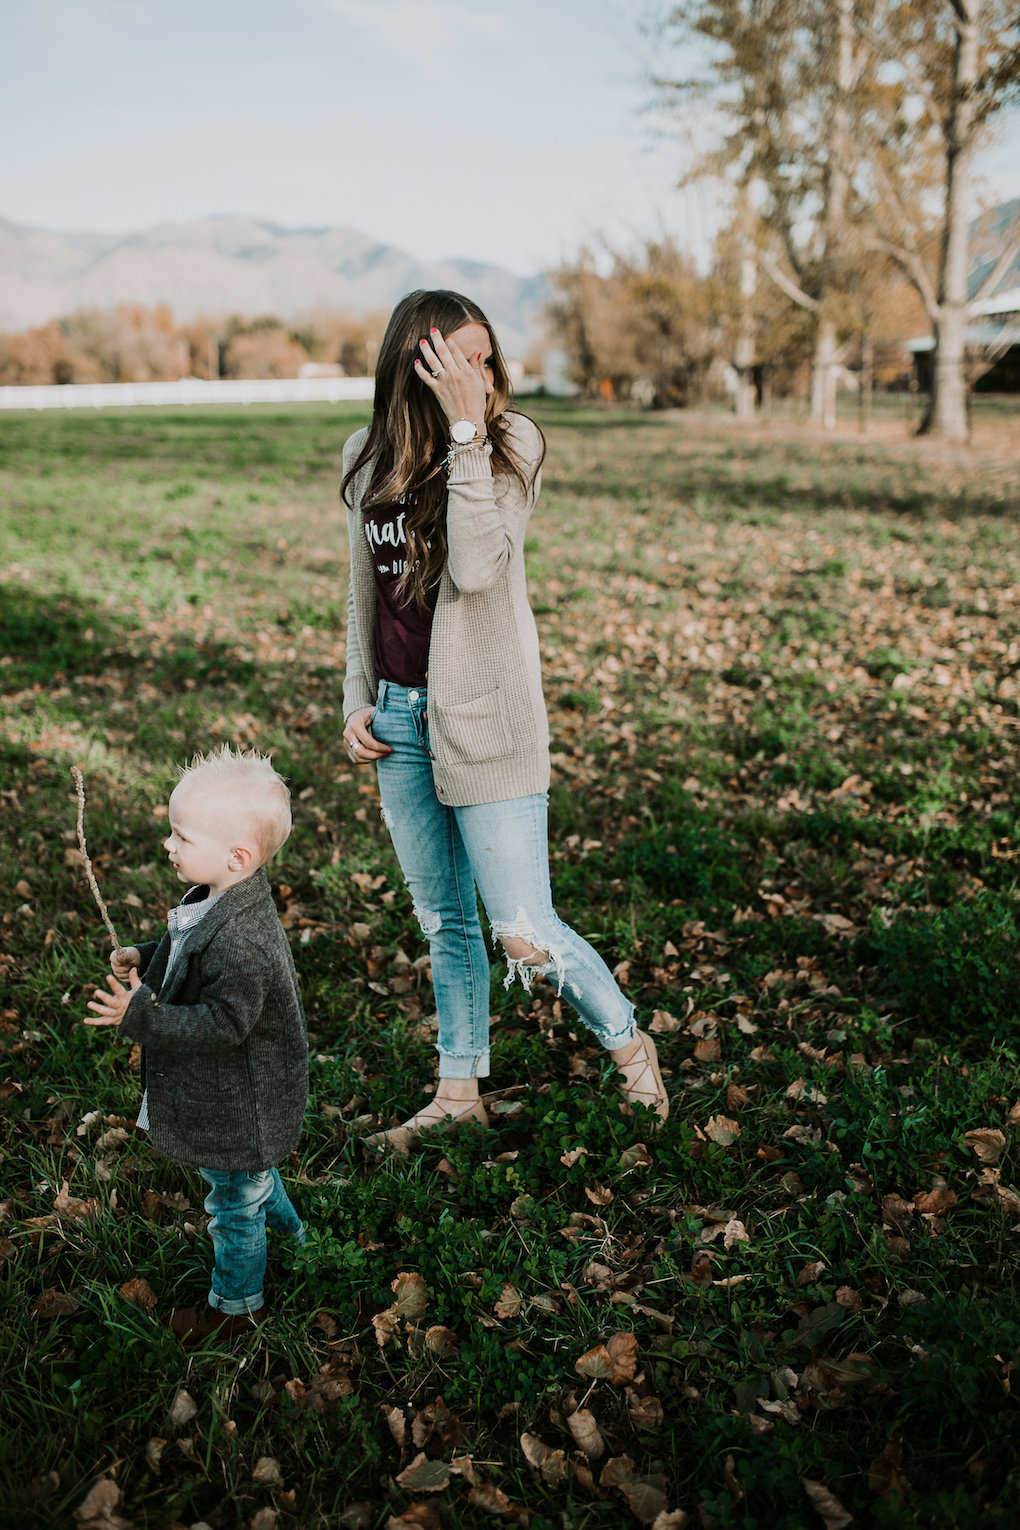 mom and little boy playing in field little boy in tweed jacket and plaid button up shirt with skinny jeans and brown boots mom in long cream cardigan a wine colored grateful tee and distressed denim